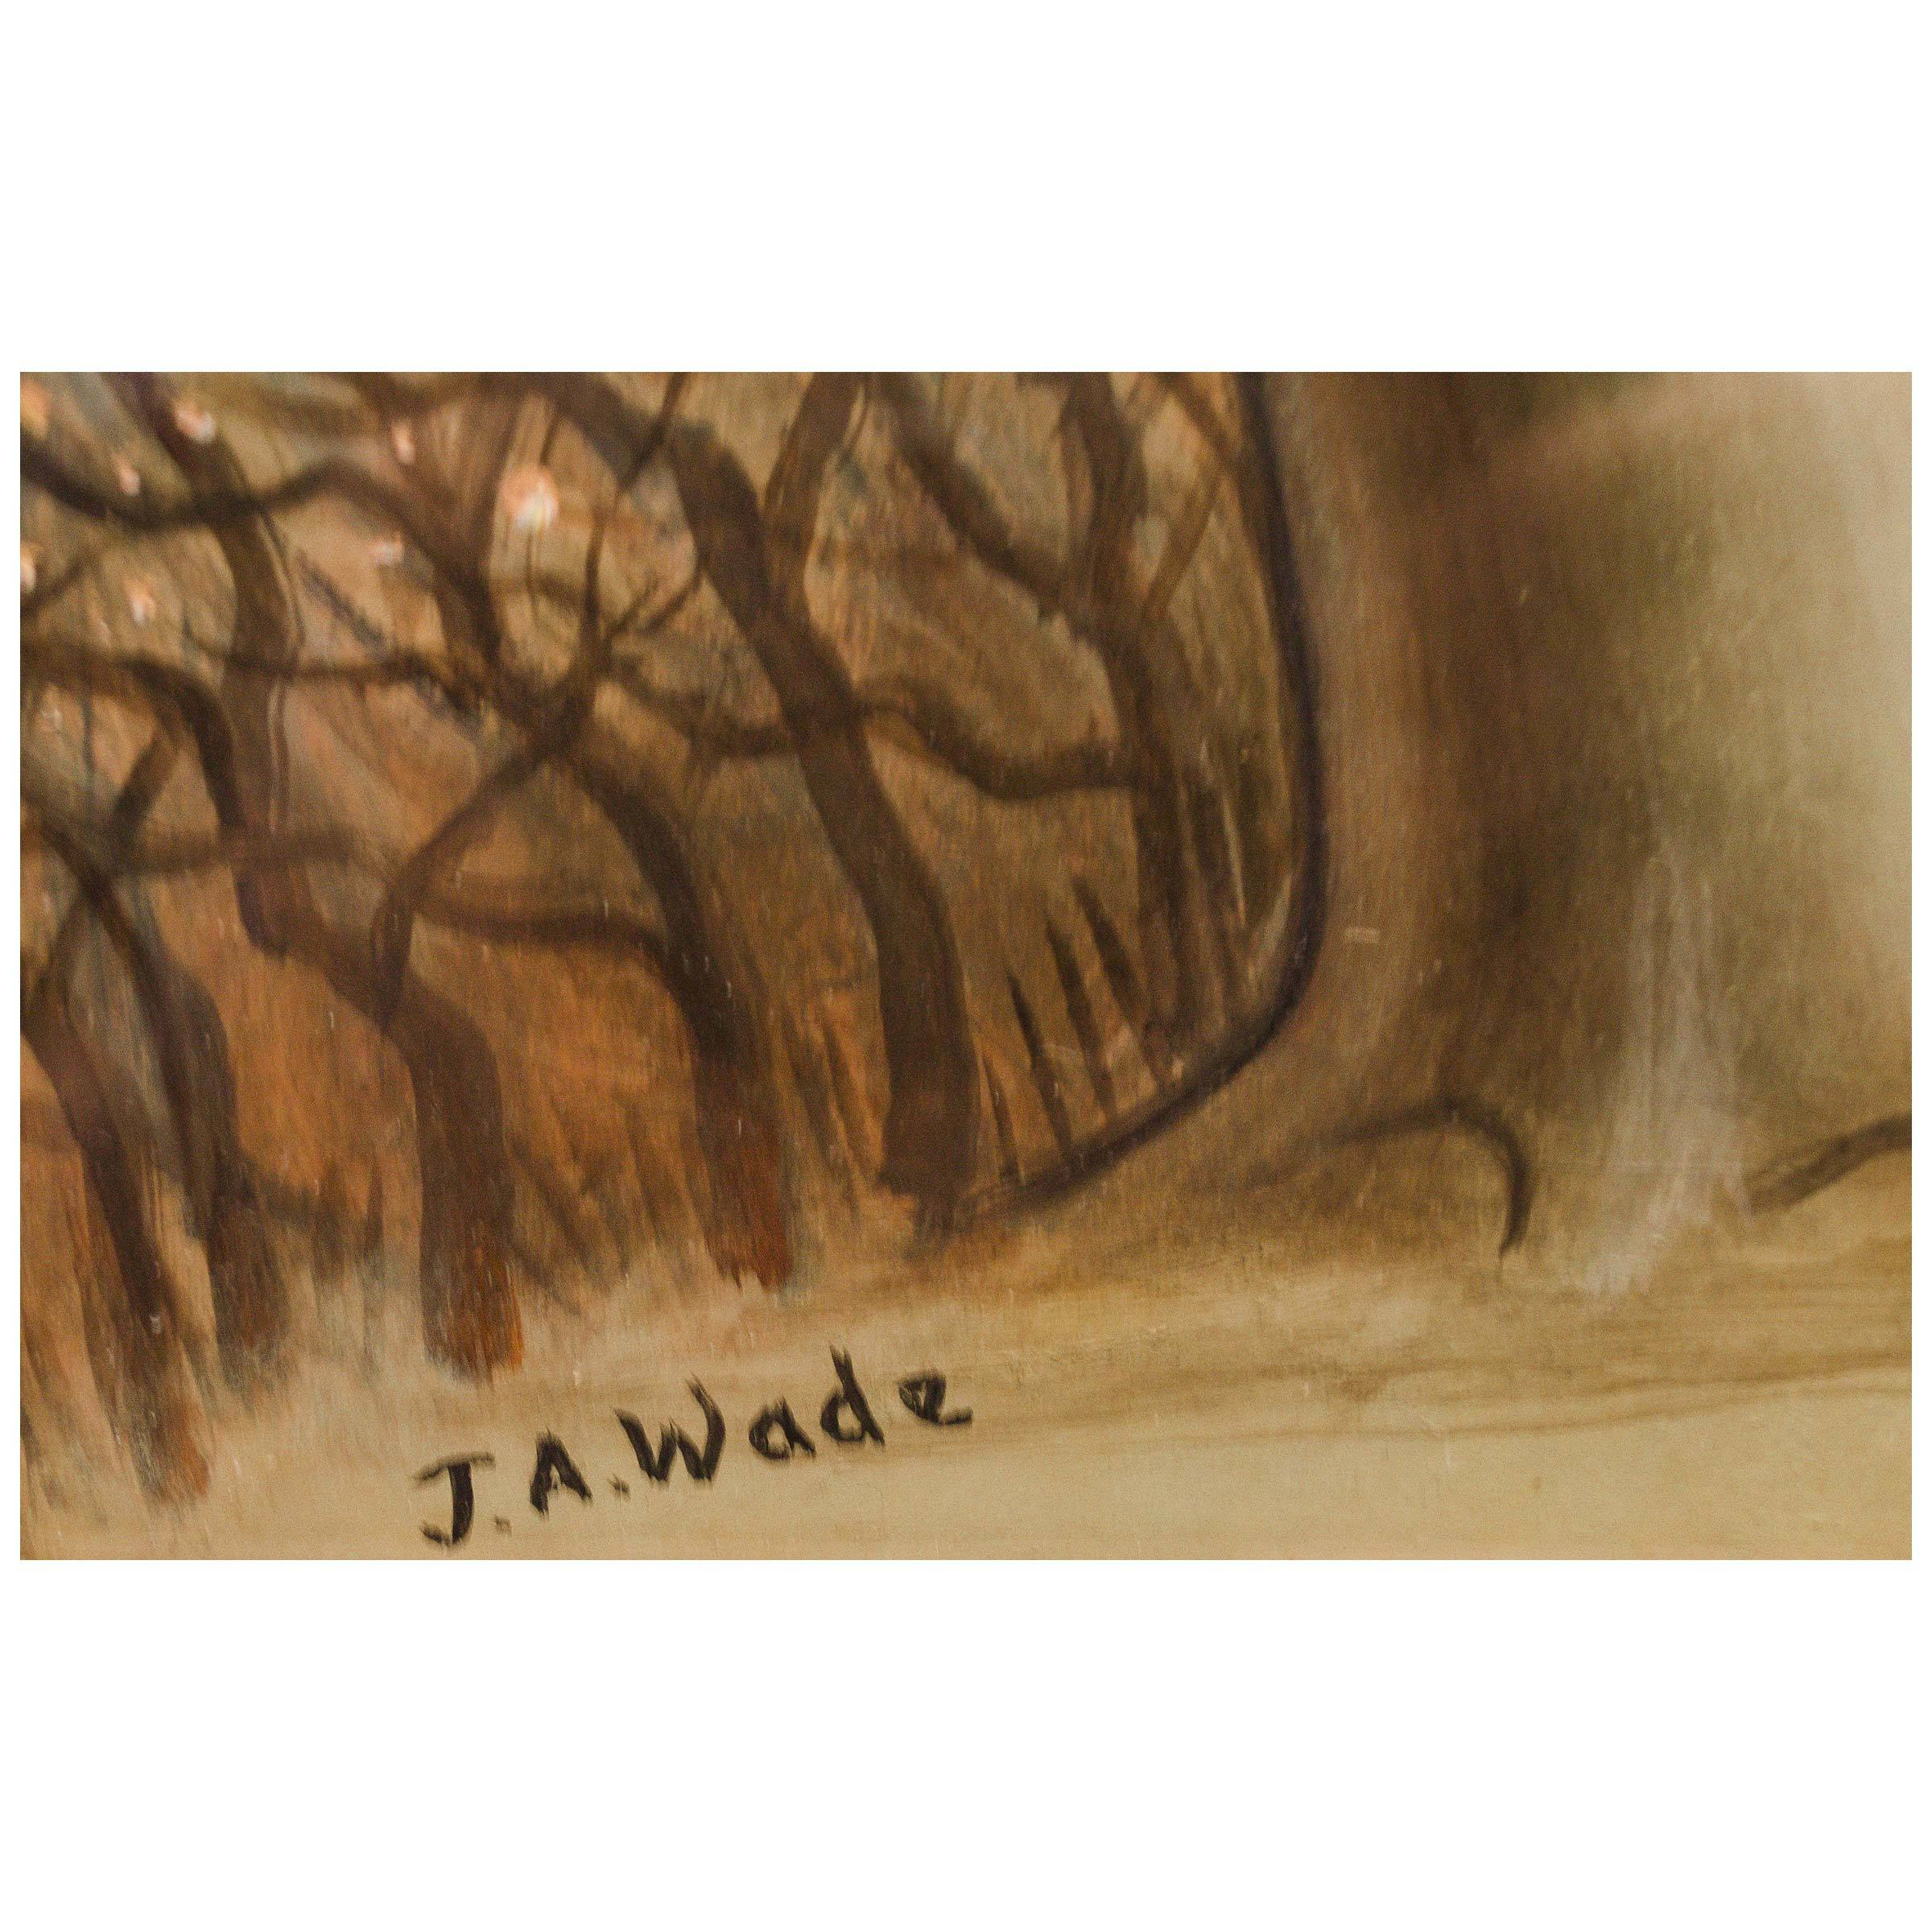 original-curvispective-oil-on-board-working-together-by-jonathan-armigel-wade-b0019997i.jpg